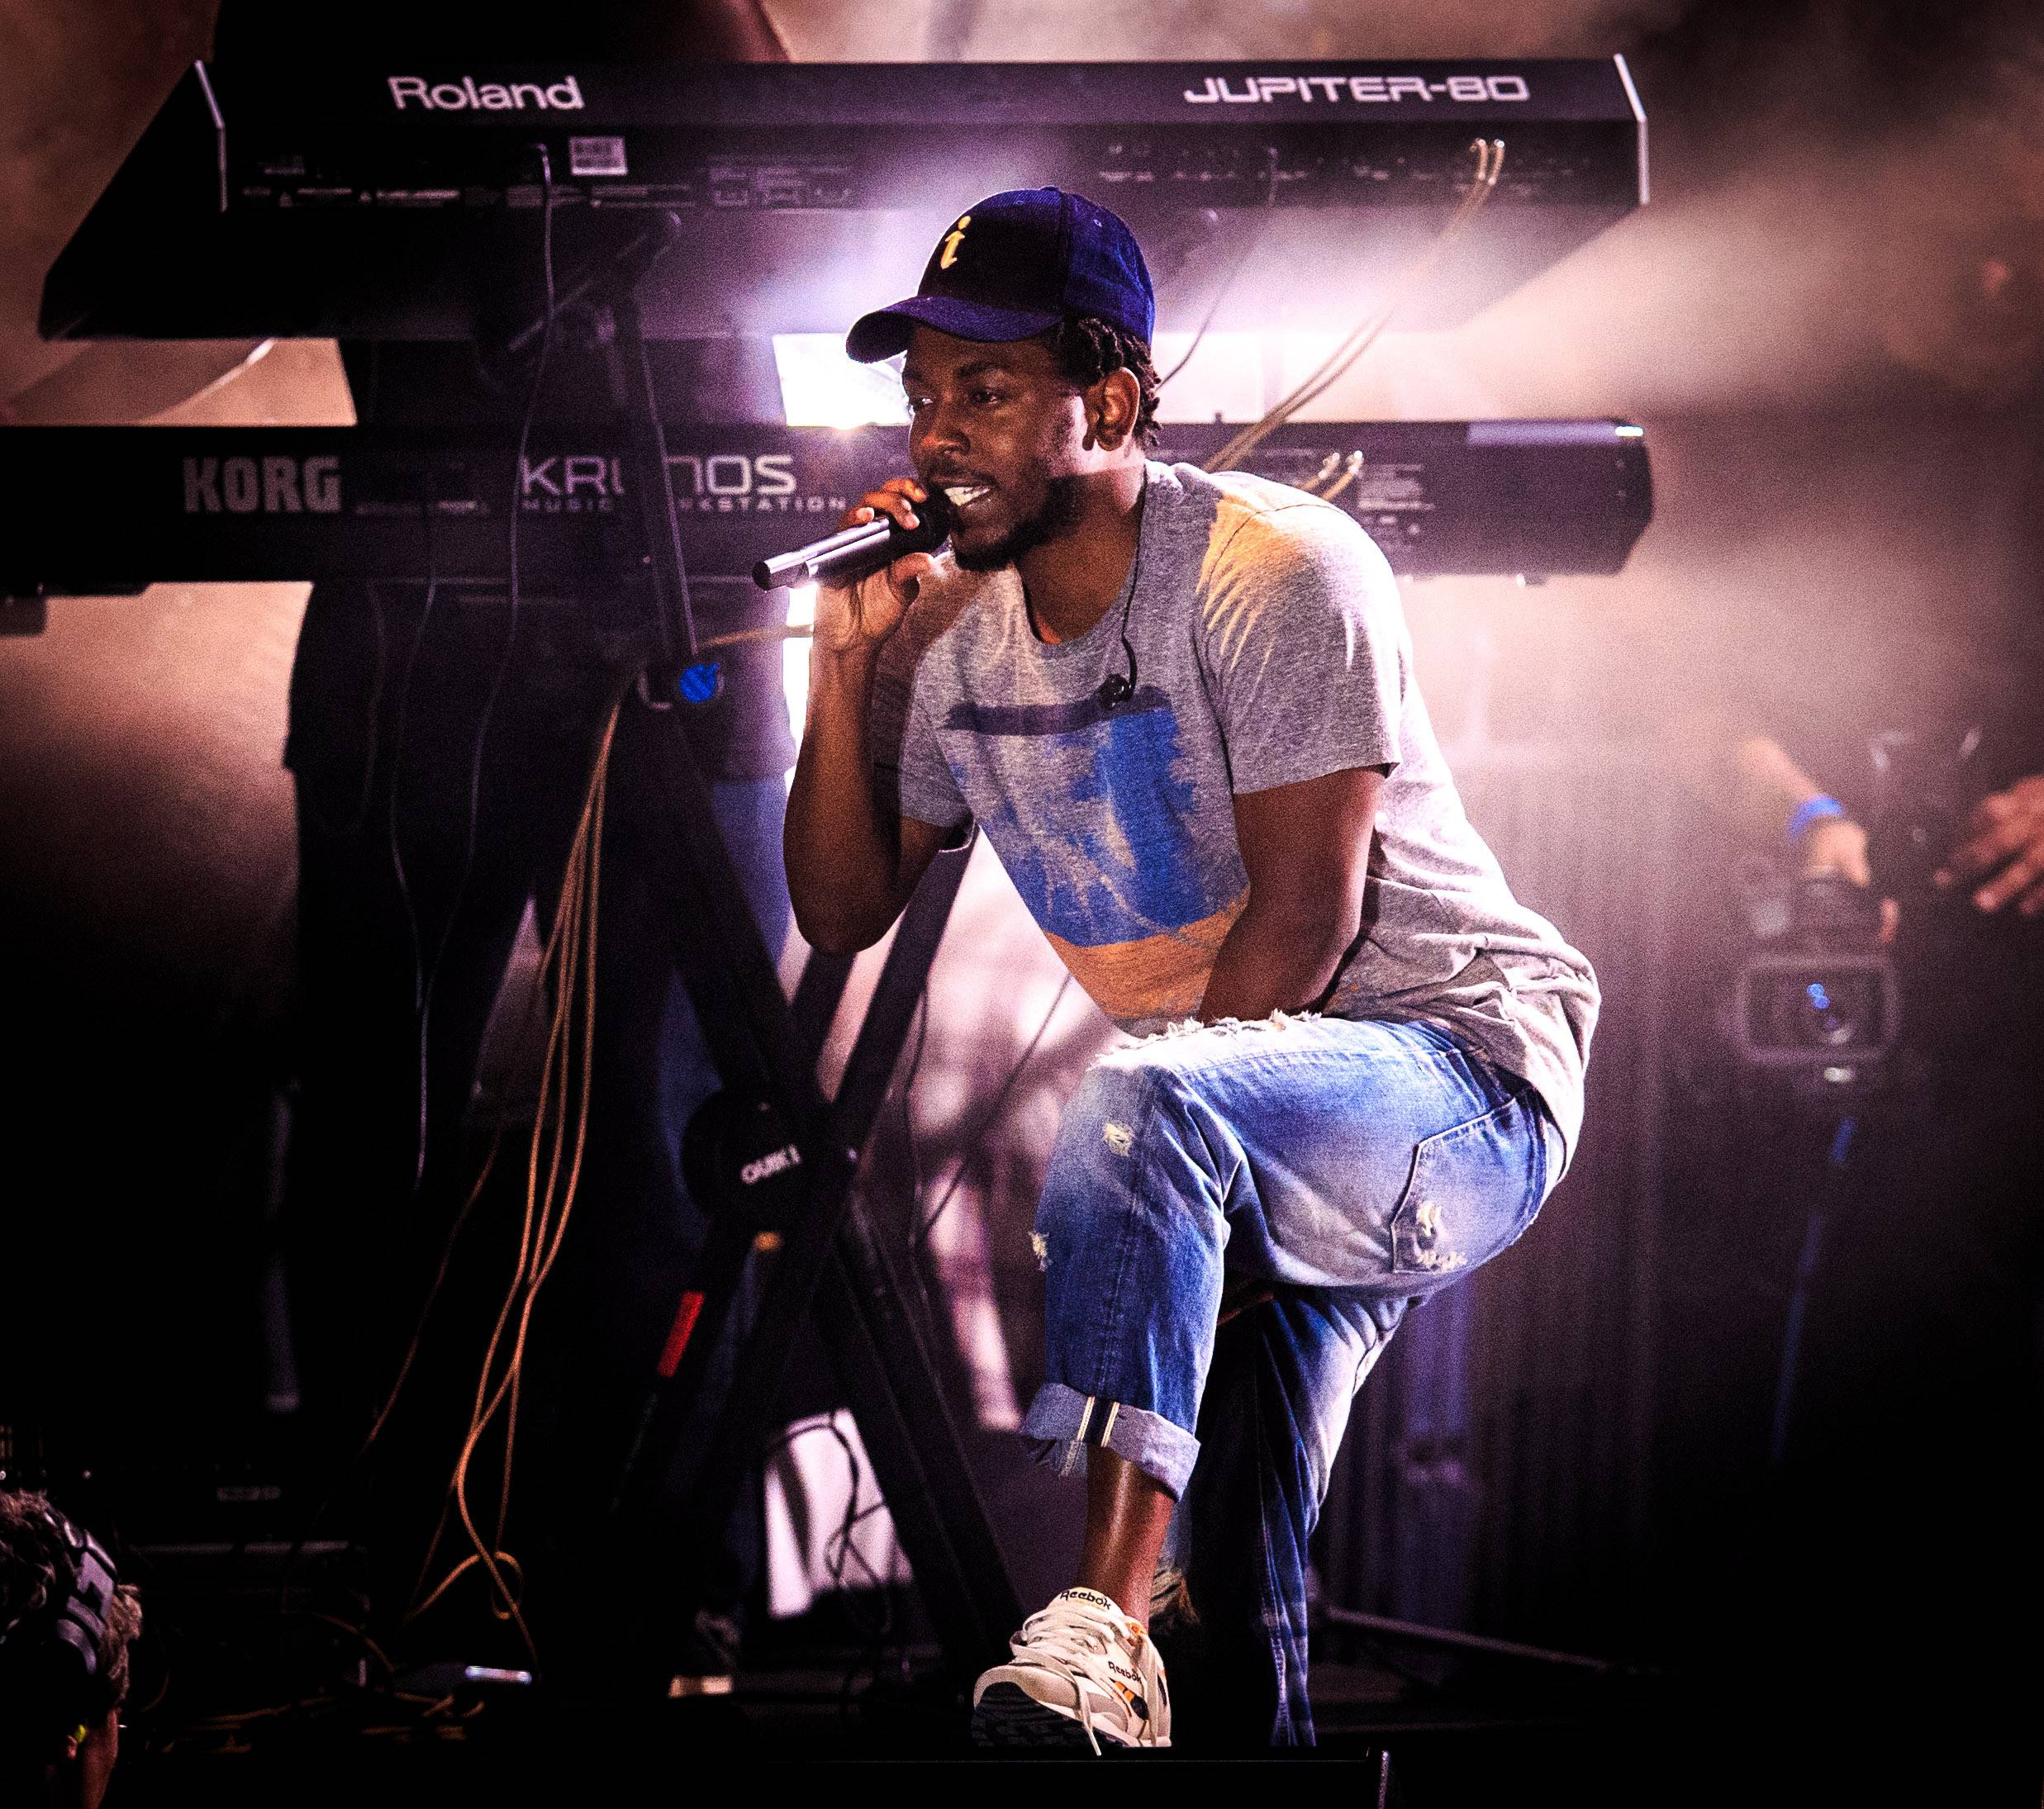 """Kendrick Lamar - Kendrick Lamarhas credited Mr. West for teaching him to """"always stay as creative as possible,"""" and """"never have any boundaries."""" And he's also taught him that he doesn't have to contain that to music. ?Those things that people called 'rants' on-stage are real conversations that we had behind closed doors about business and how when you get to a certain level people won't want to see you break through because they only see you as a rapper,? Kendrick said.(Photo: Christopher Polk/Getty Images for BACARDI)"""